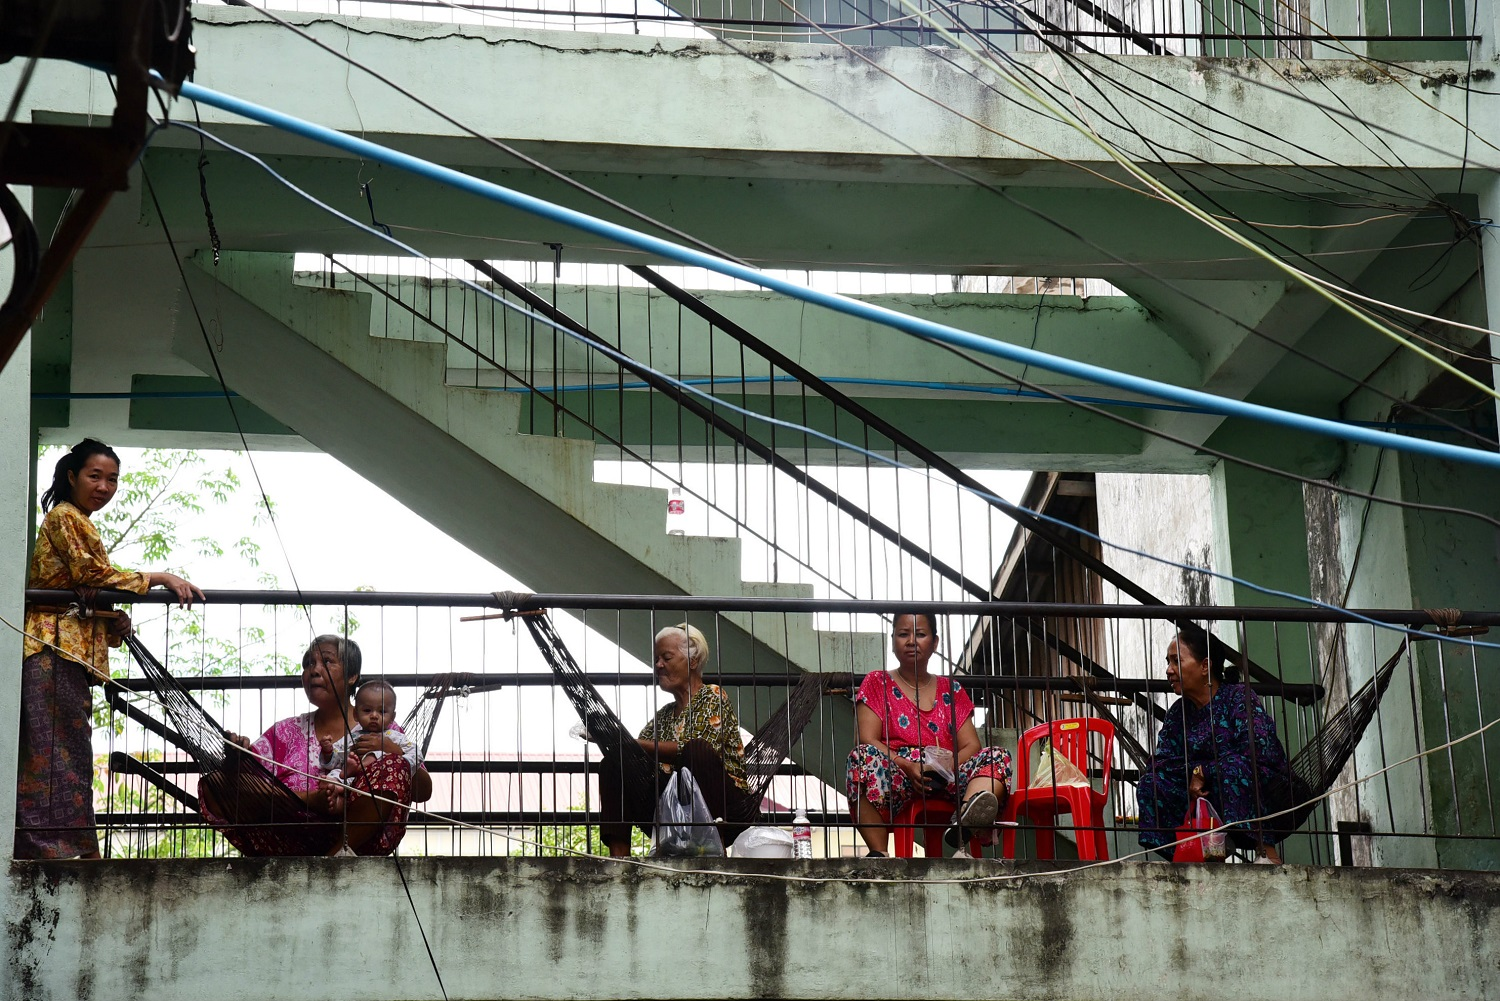 An estimated 140,000 people are living in more than 500 slums across Phnom Penh.